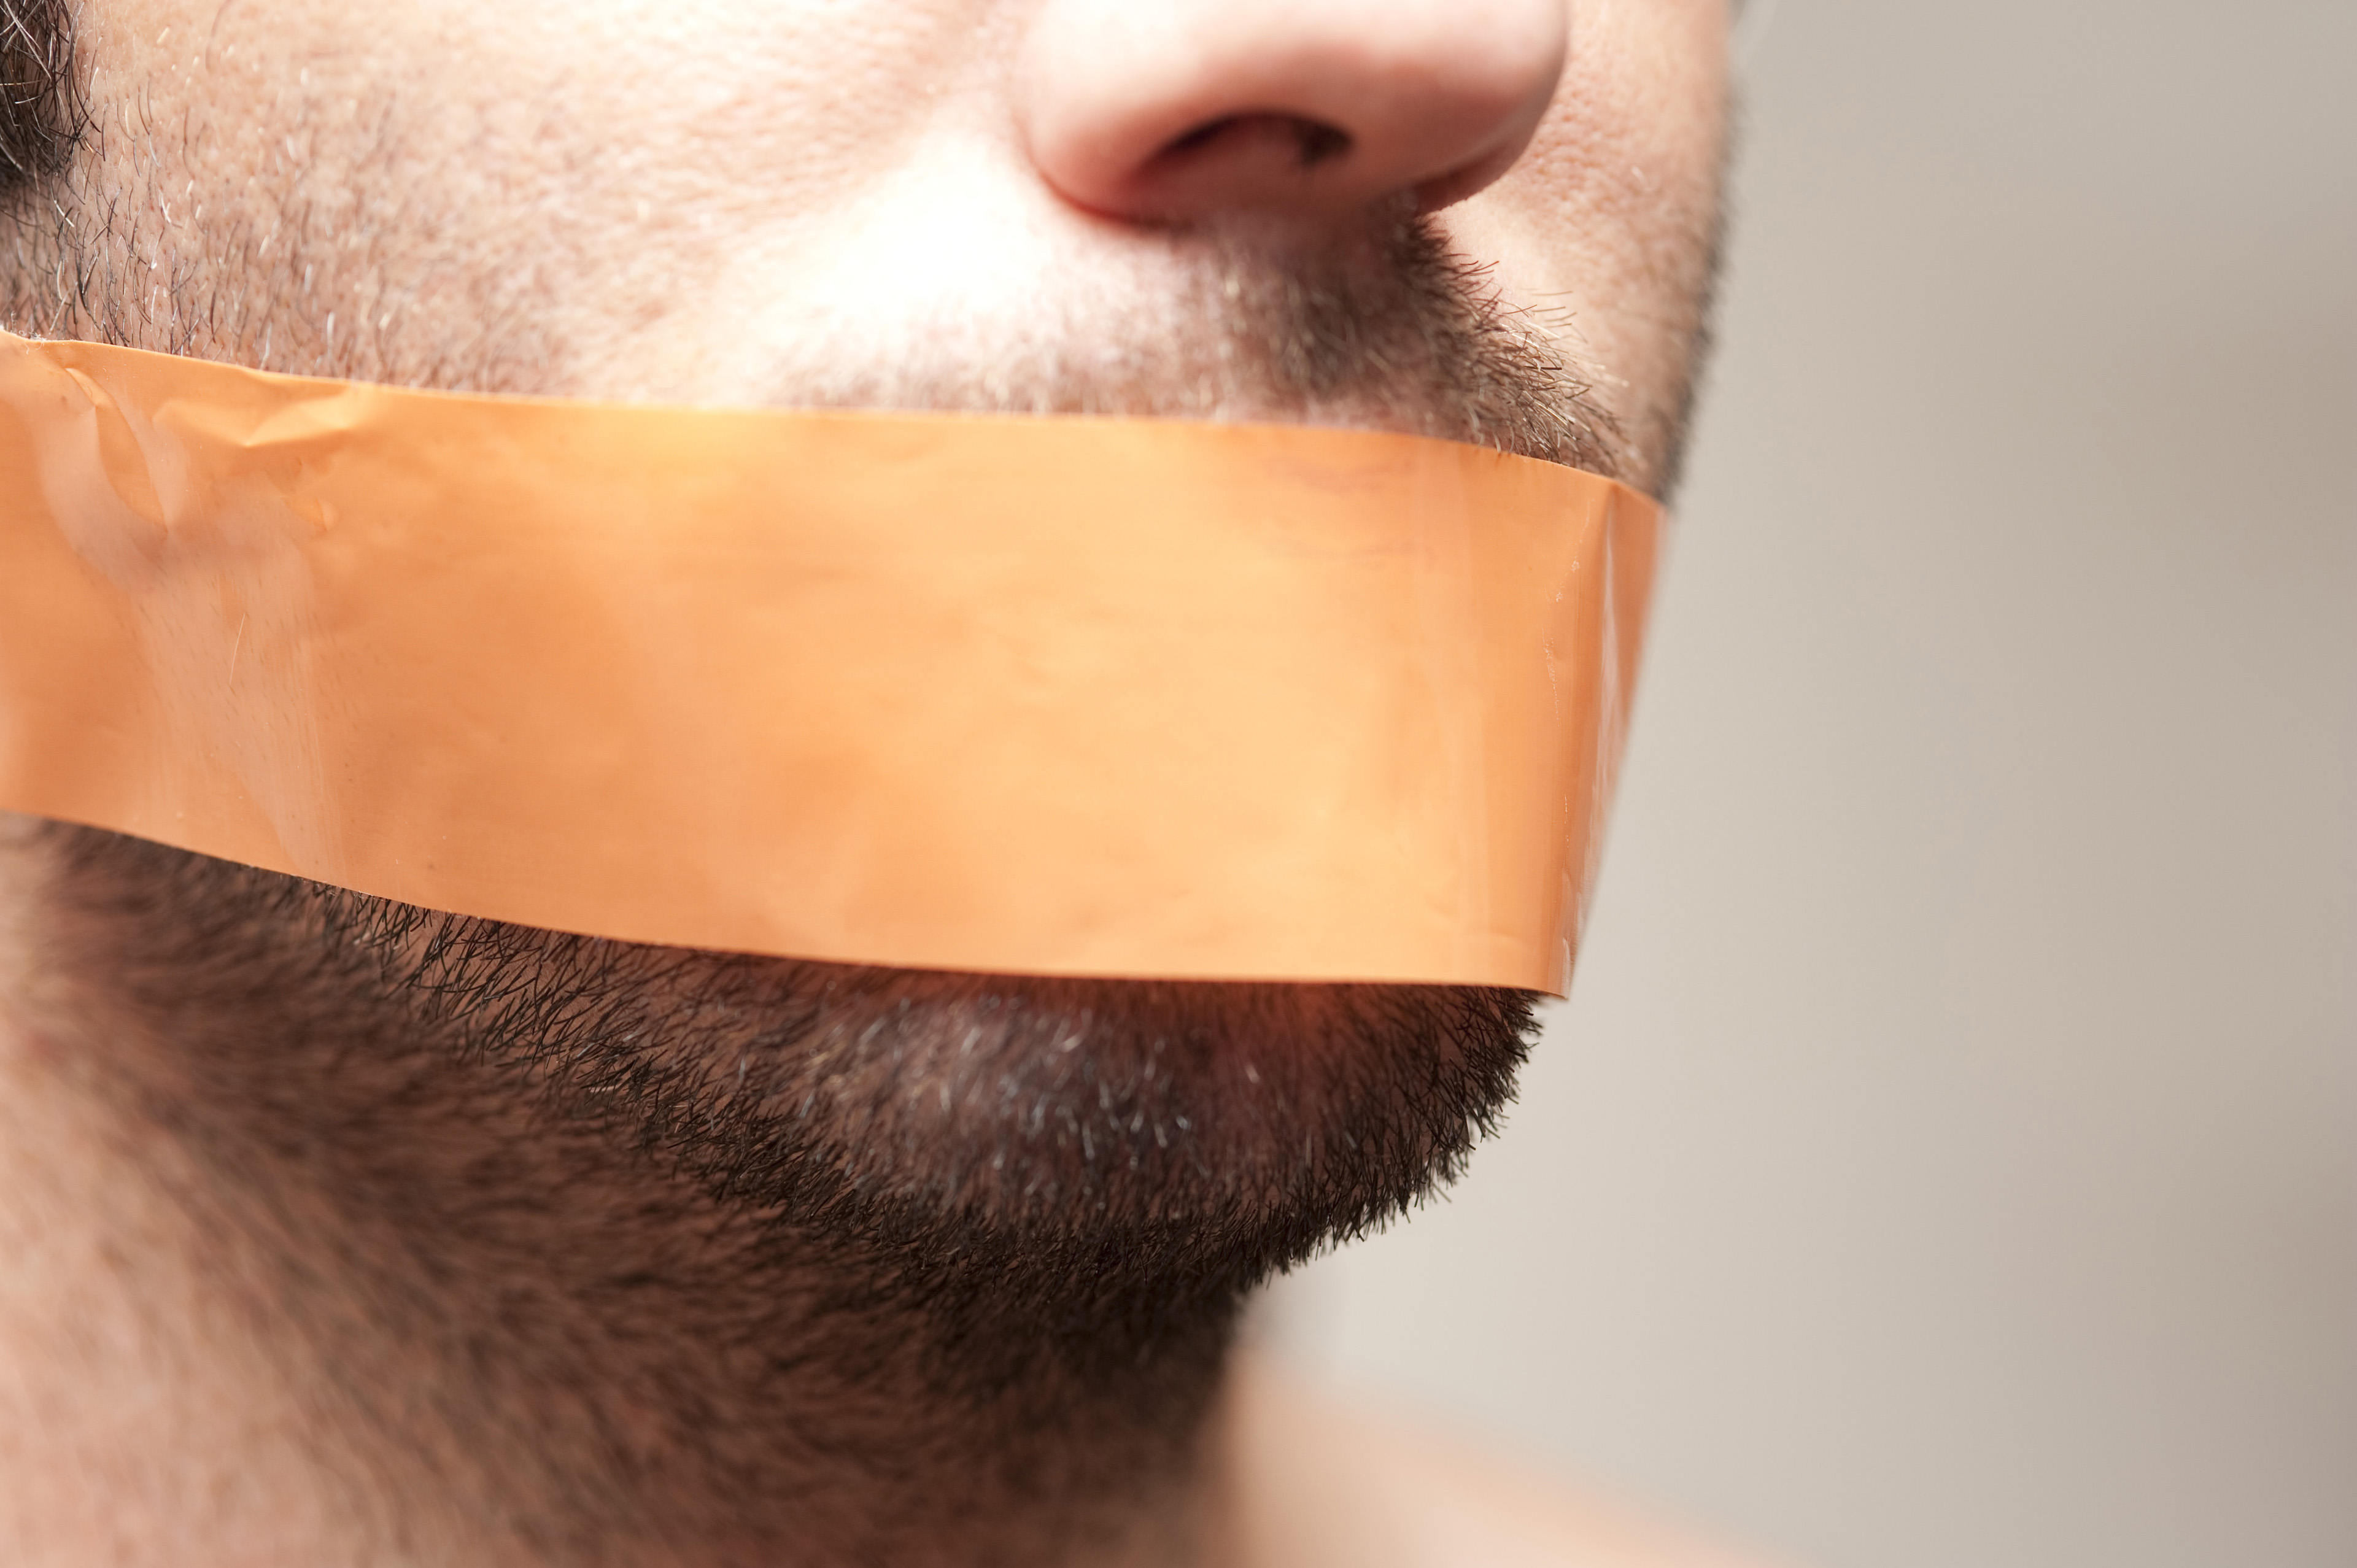 Can't Speak - Close Up of Man with Facial Hair Stubble Gagged with Orange Tape Across Mouth